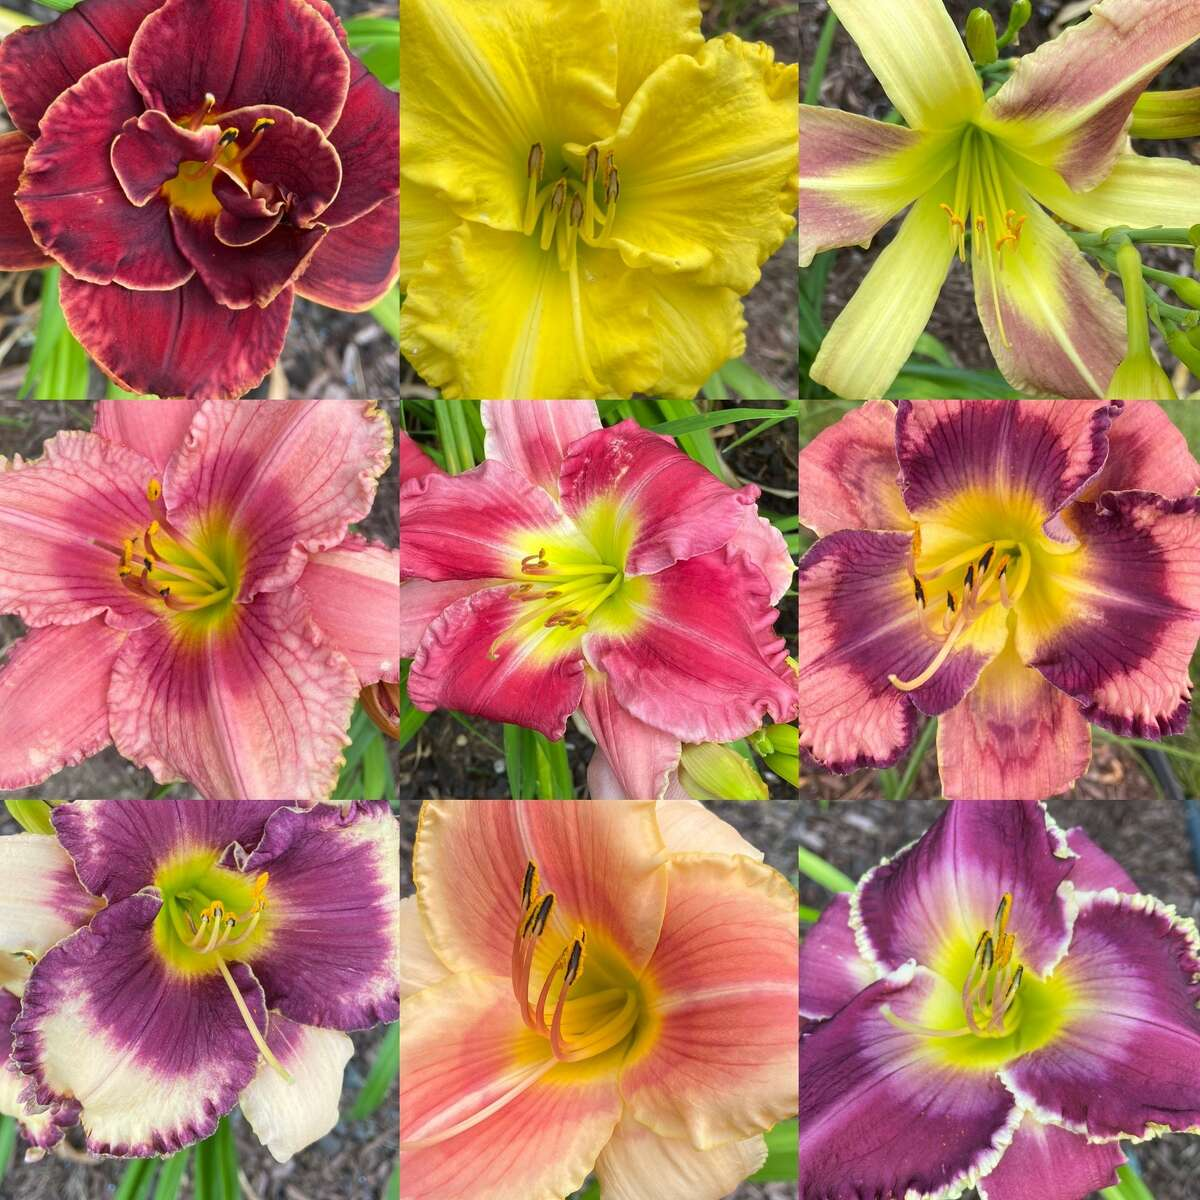 These are a few of the varieties of day lilies grown by Lori Kwiatkowski of Niskayuna. Submitted by Cyndi and Jim Magenis of Guilderland.